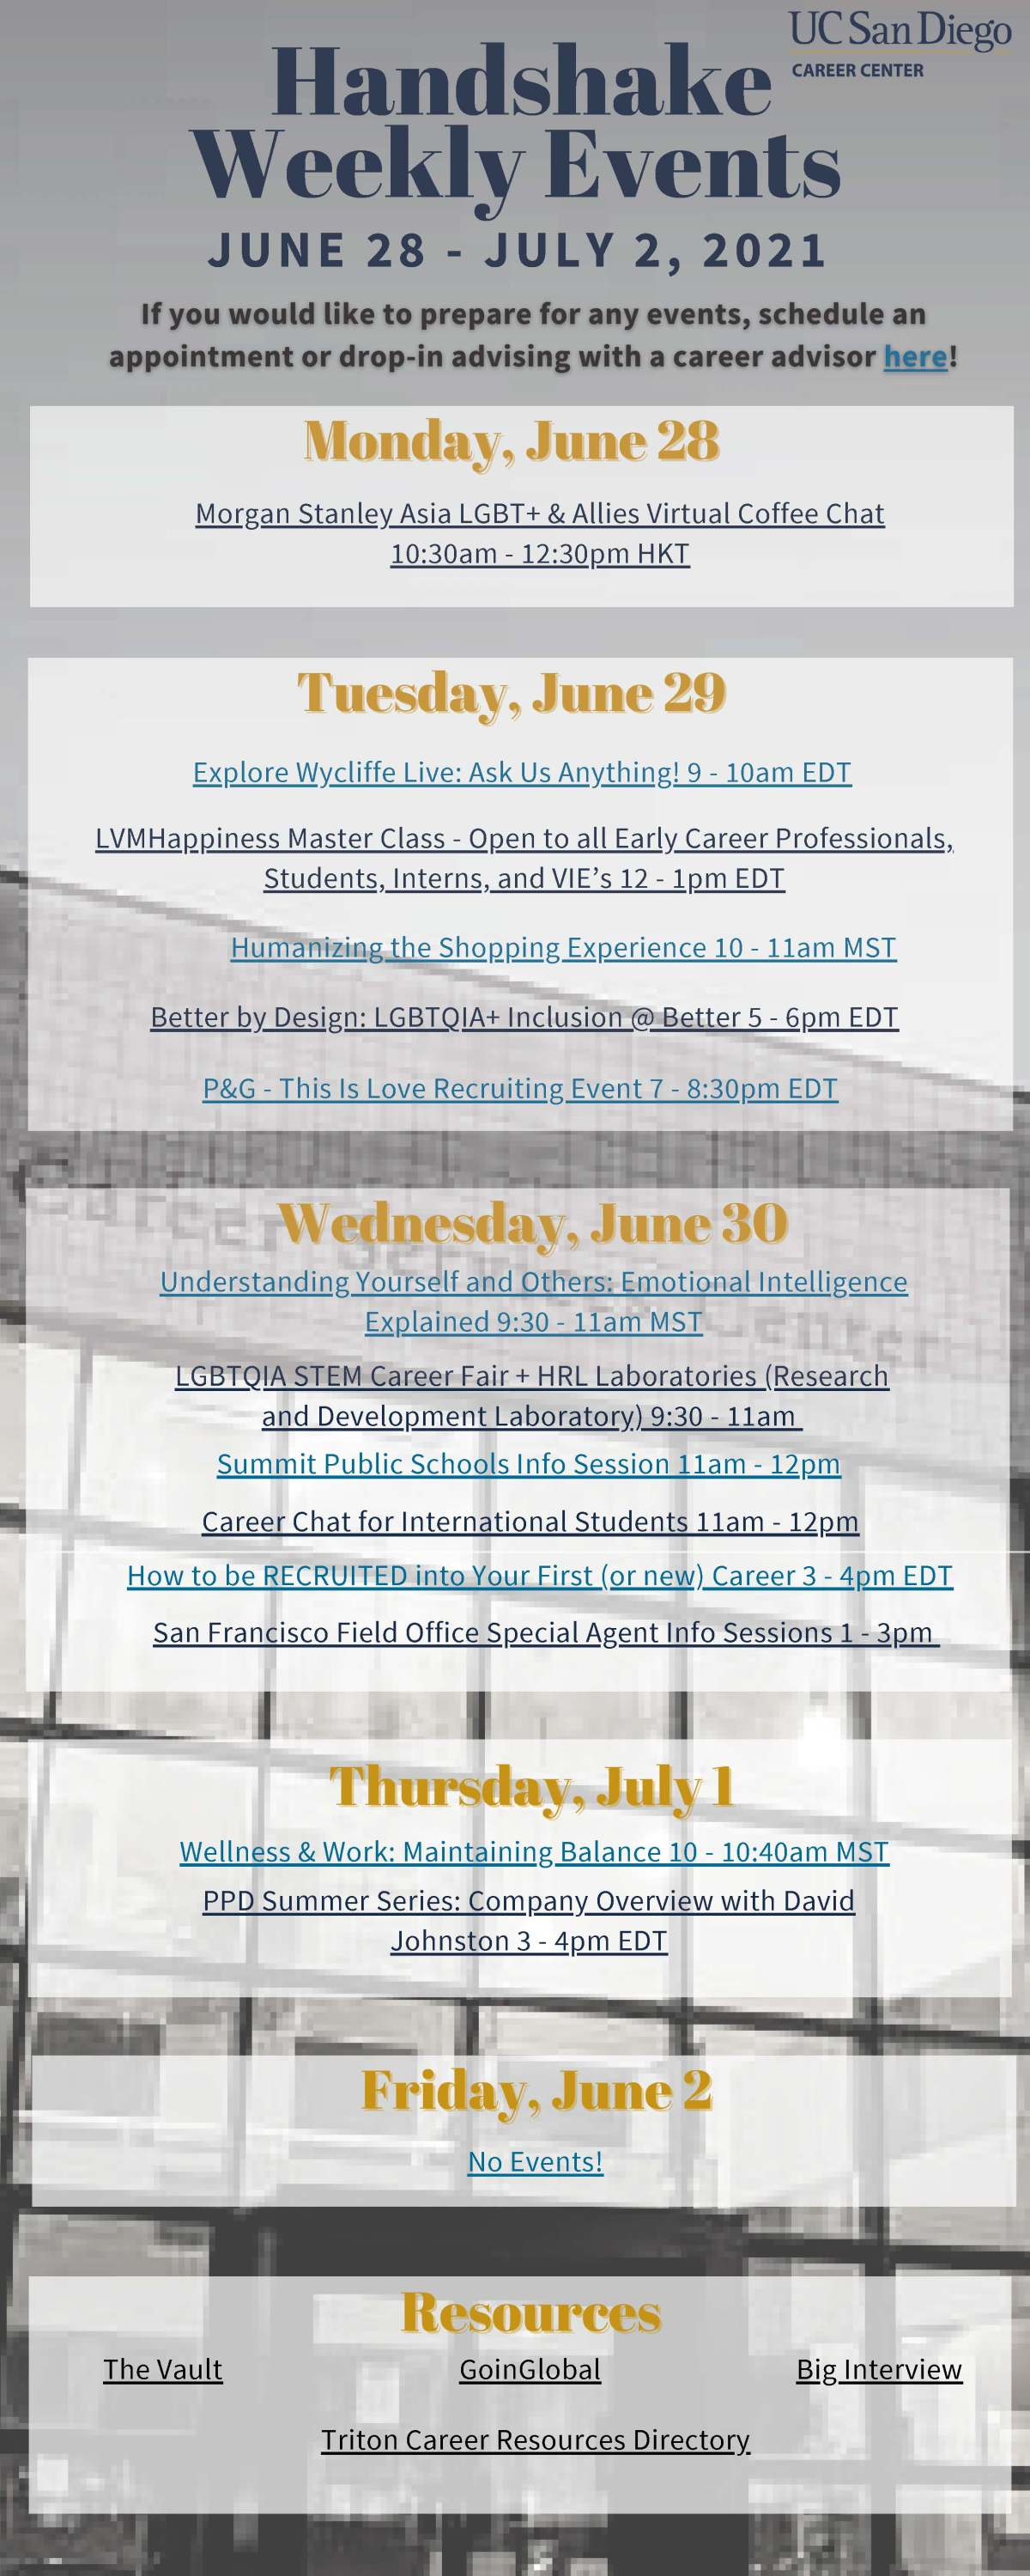 Career Center Handshake Weekly Events for June 28th – July2nd